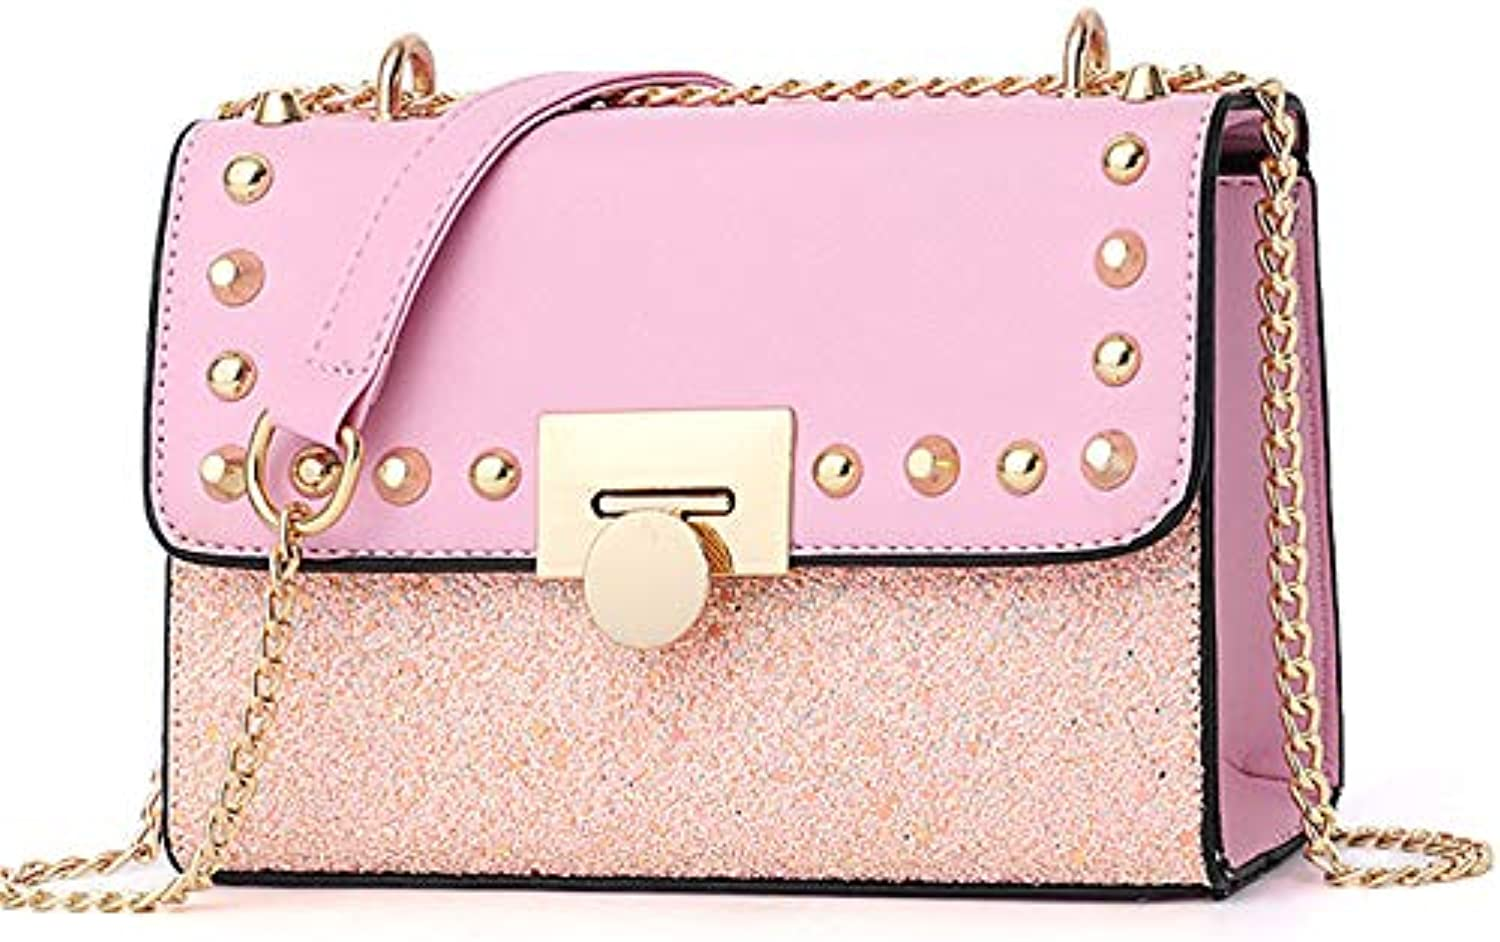 ASHIJIN Shoulder Bag Women Summer Beach Leather Handbag Small Sequins Lapel Rivets Metal Pink Chain Women Handbag Fashion